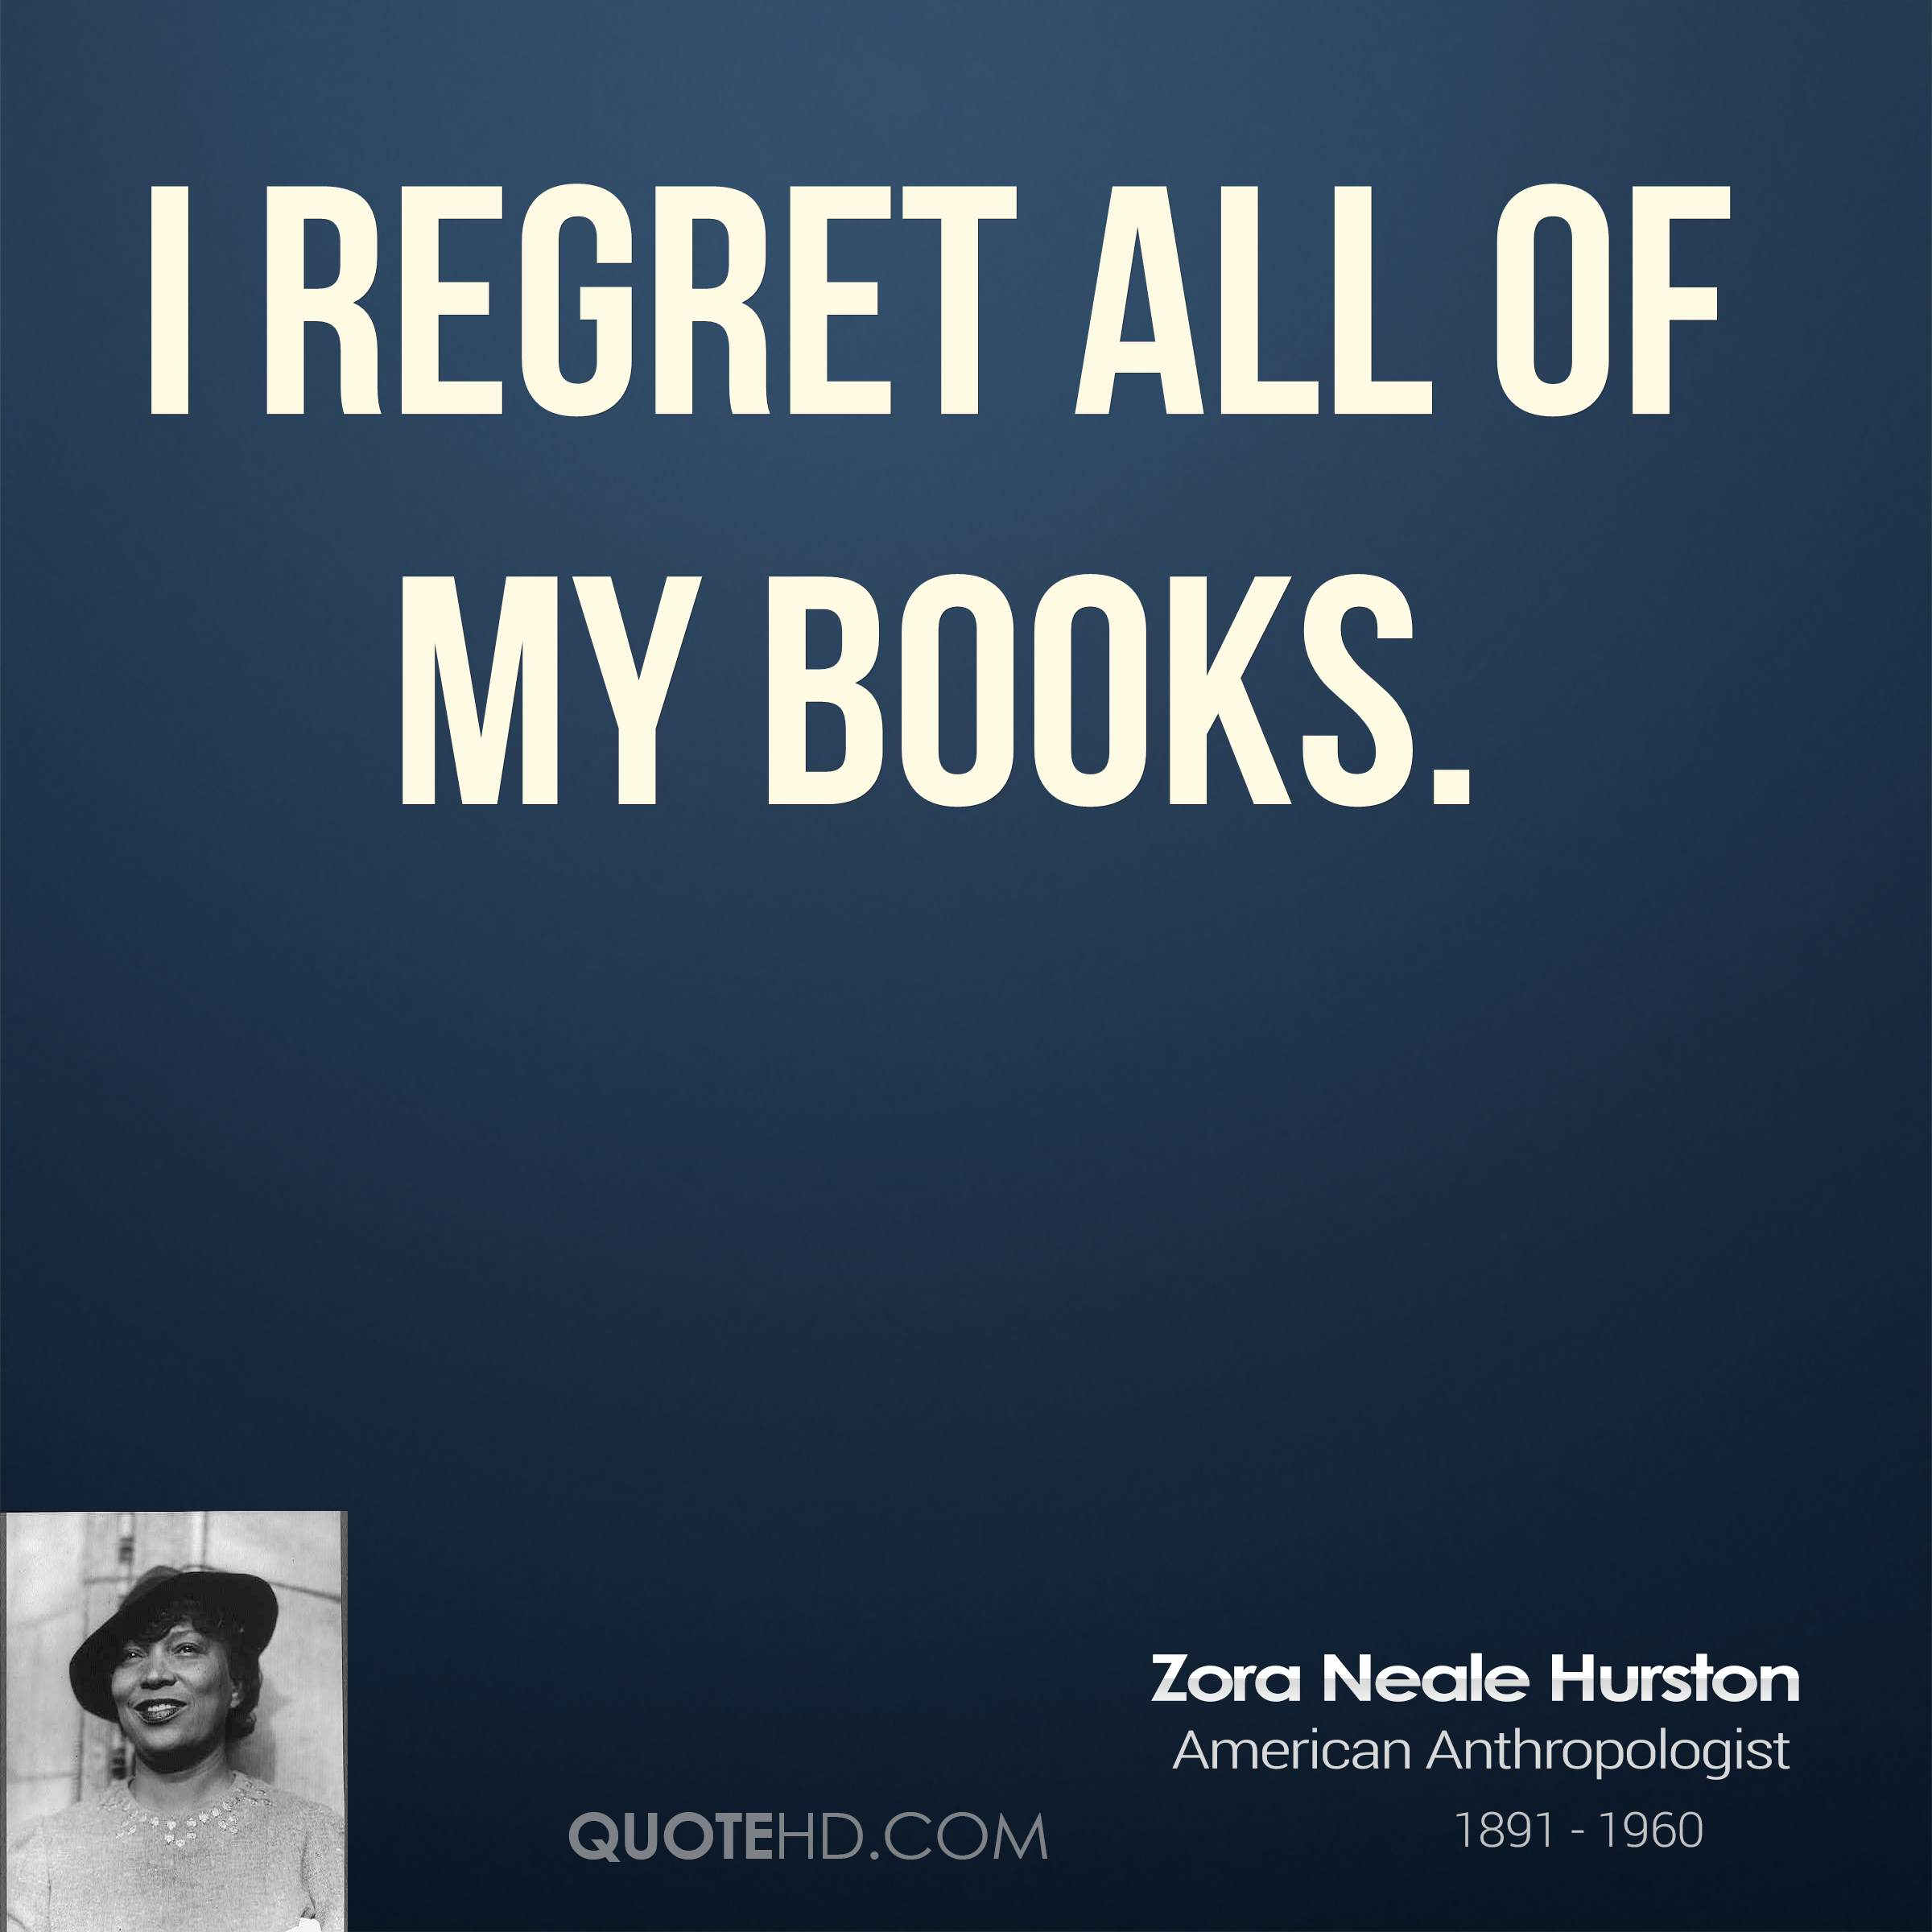 I regret all of my books.